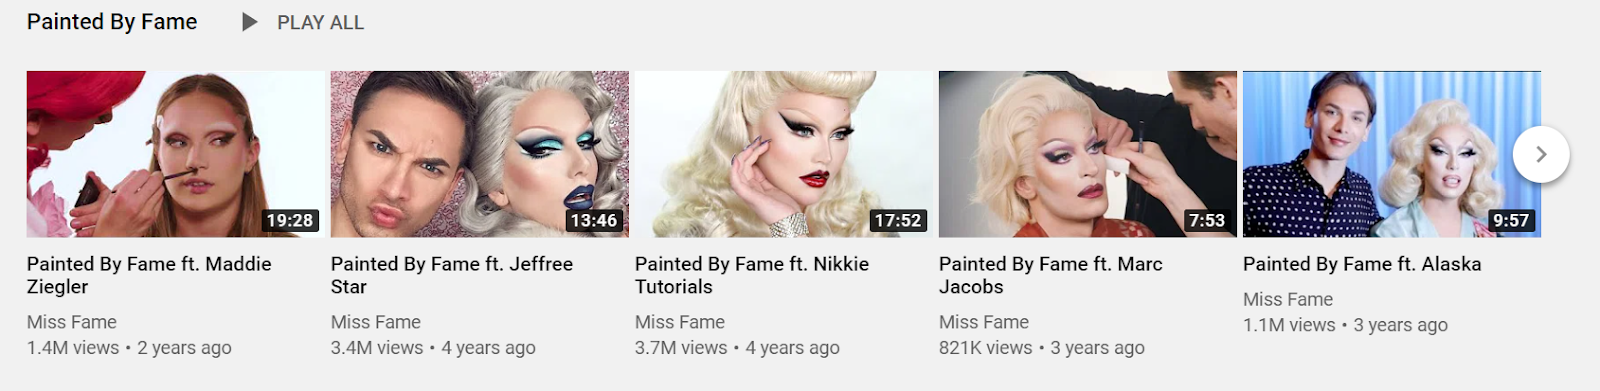 Painted by Fame YouTube chanel